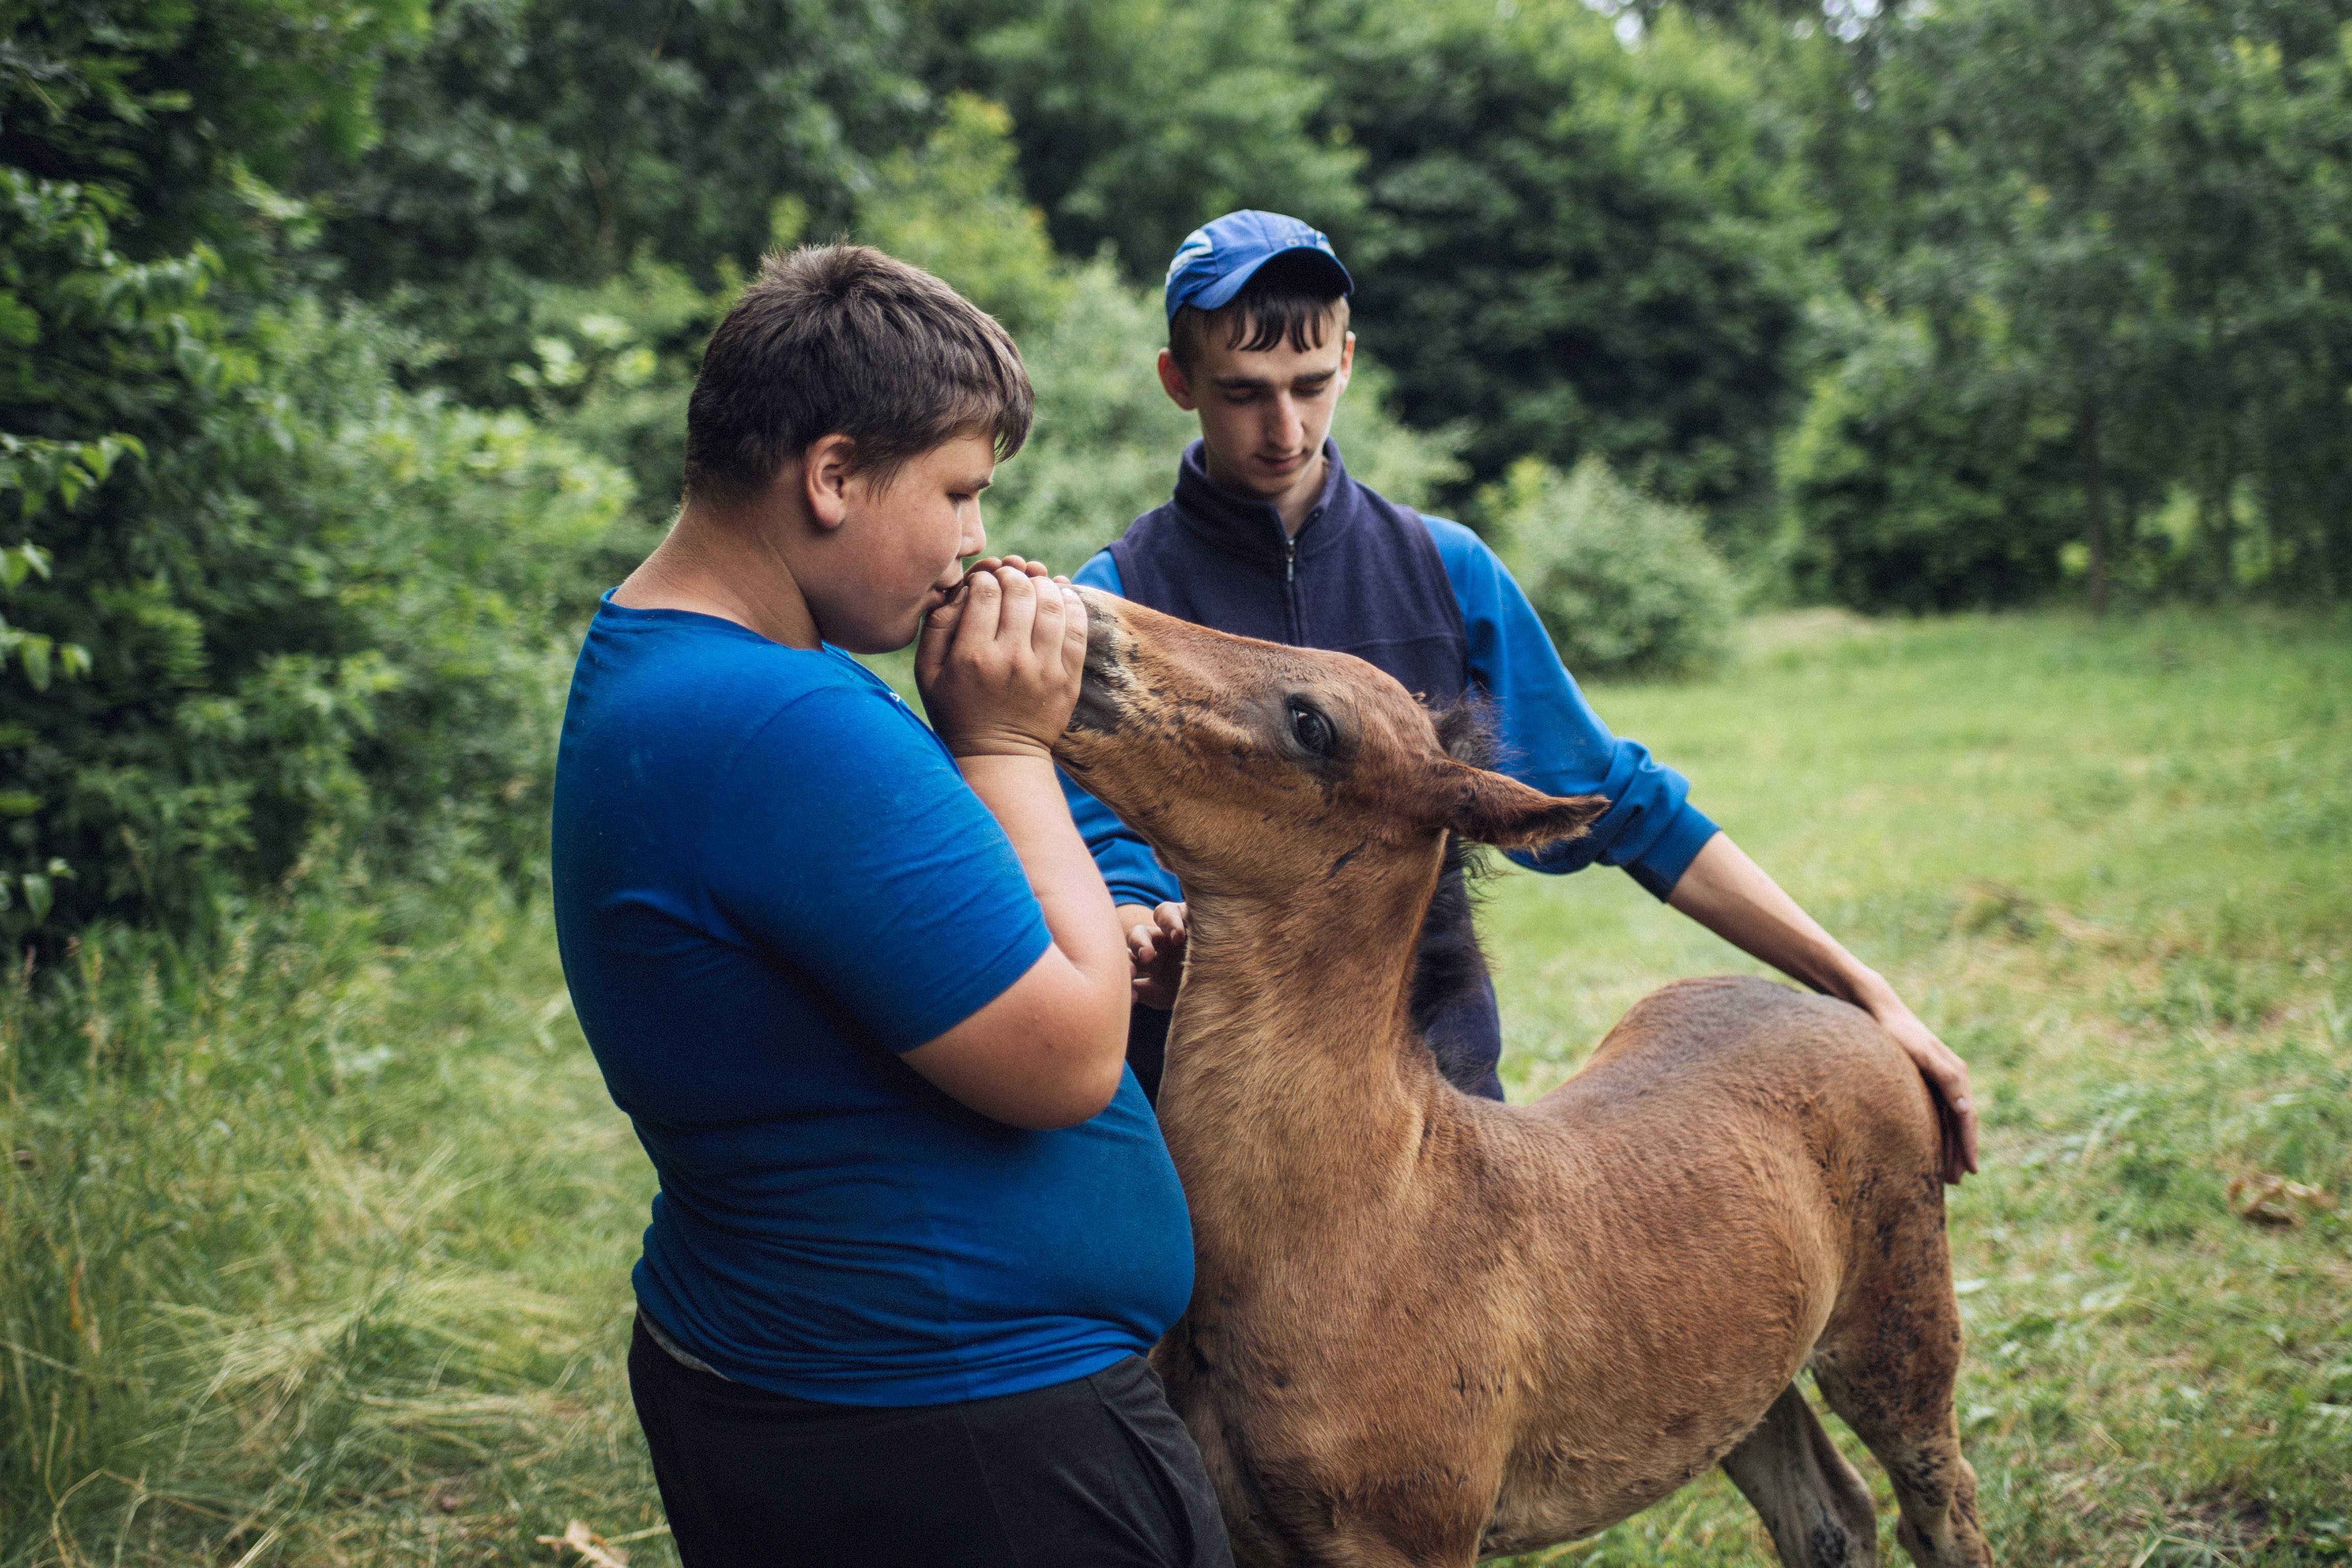 Maxim and Vasya embrace a newborn foal as it stands for the  rst time. In Rotar village, horses are considered key to country living – not just for farm work but as a means of transportation.